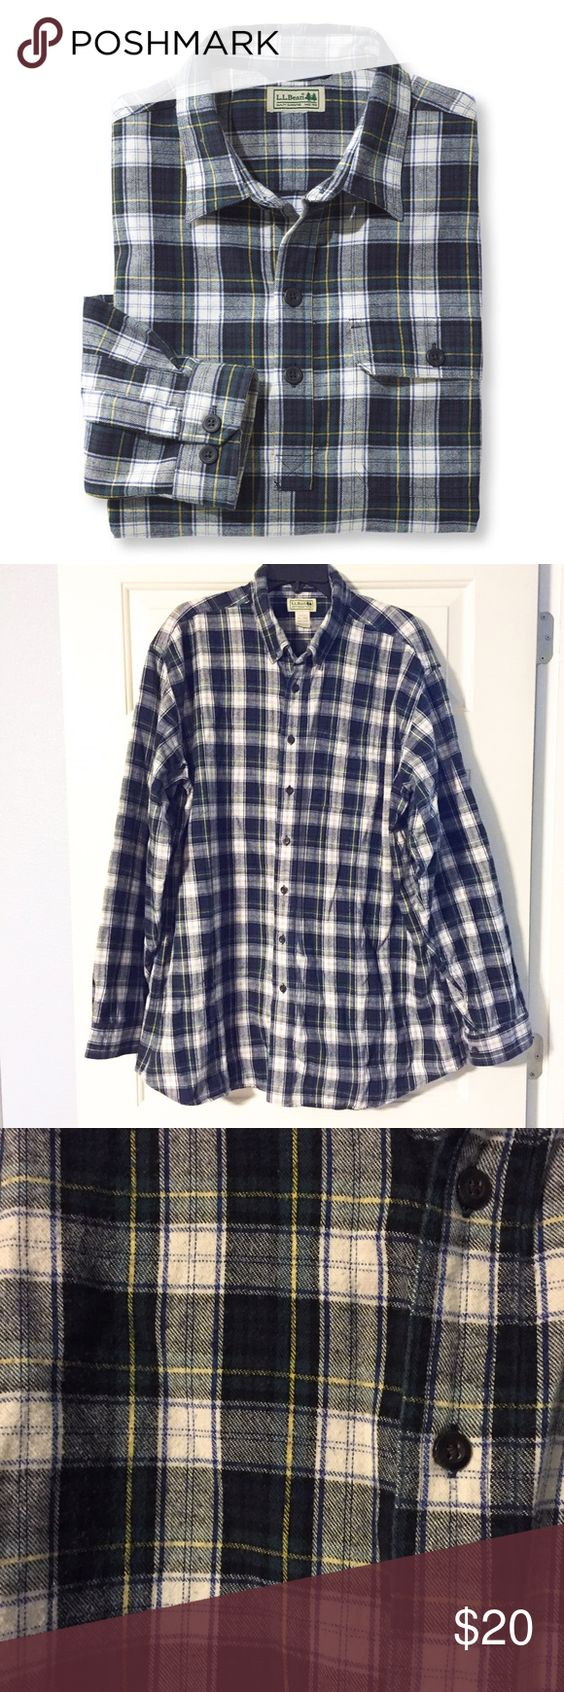 LL Bean Men's Flannel Button Down Great flannel shirt from LL Bean! Soft, warm and comfortable. Perfect for the upcoming cold weather! No rips, stains, or tears. Colors mix between green, blue, and a little bit of yellow. From their men's Tall line it is a men's 2XL Tall. L.L. Bean Shirts Casual Button Down Shirts